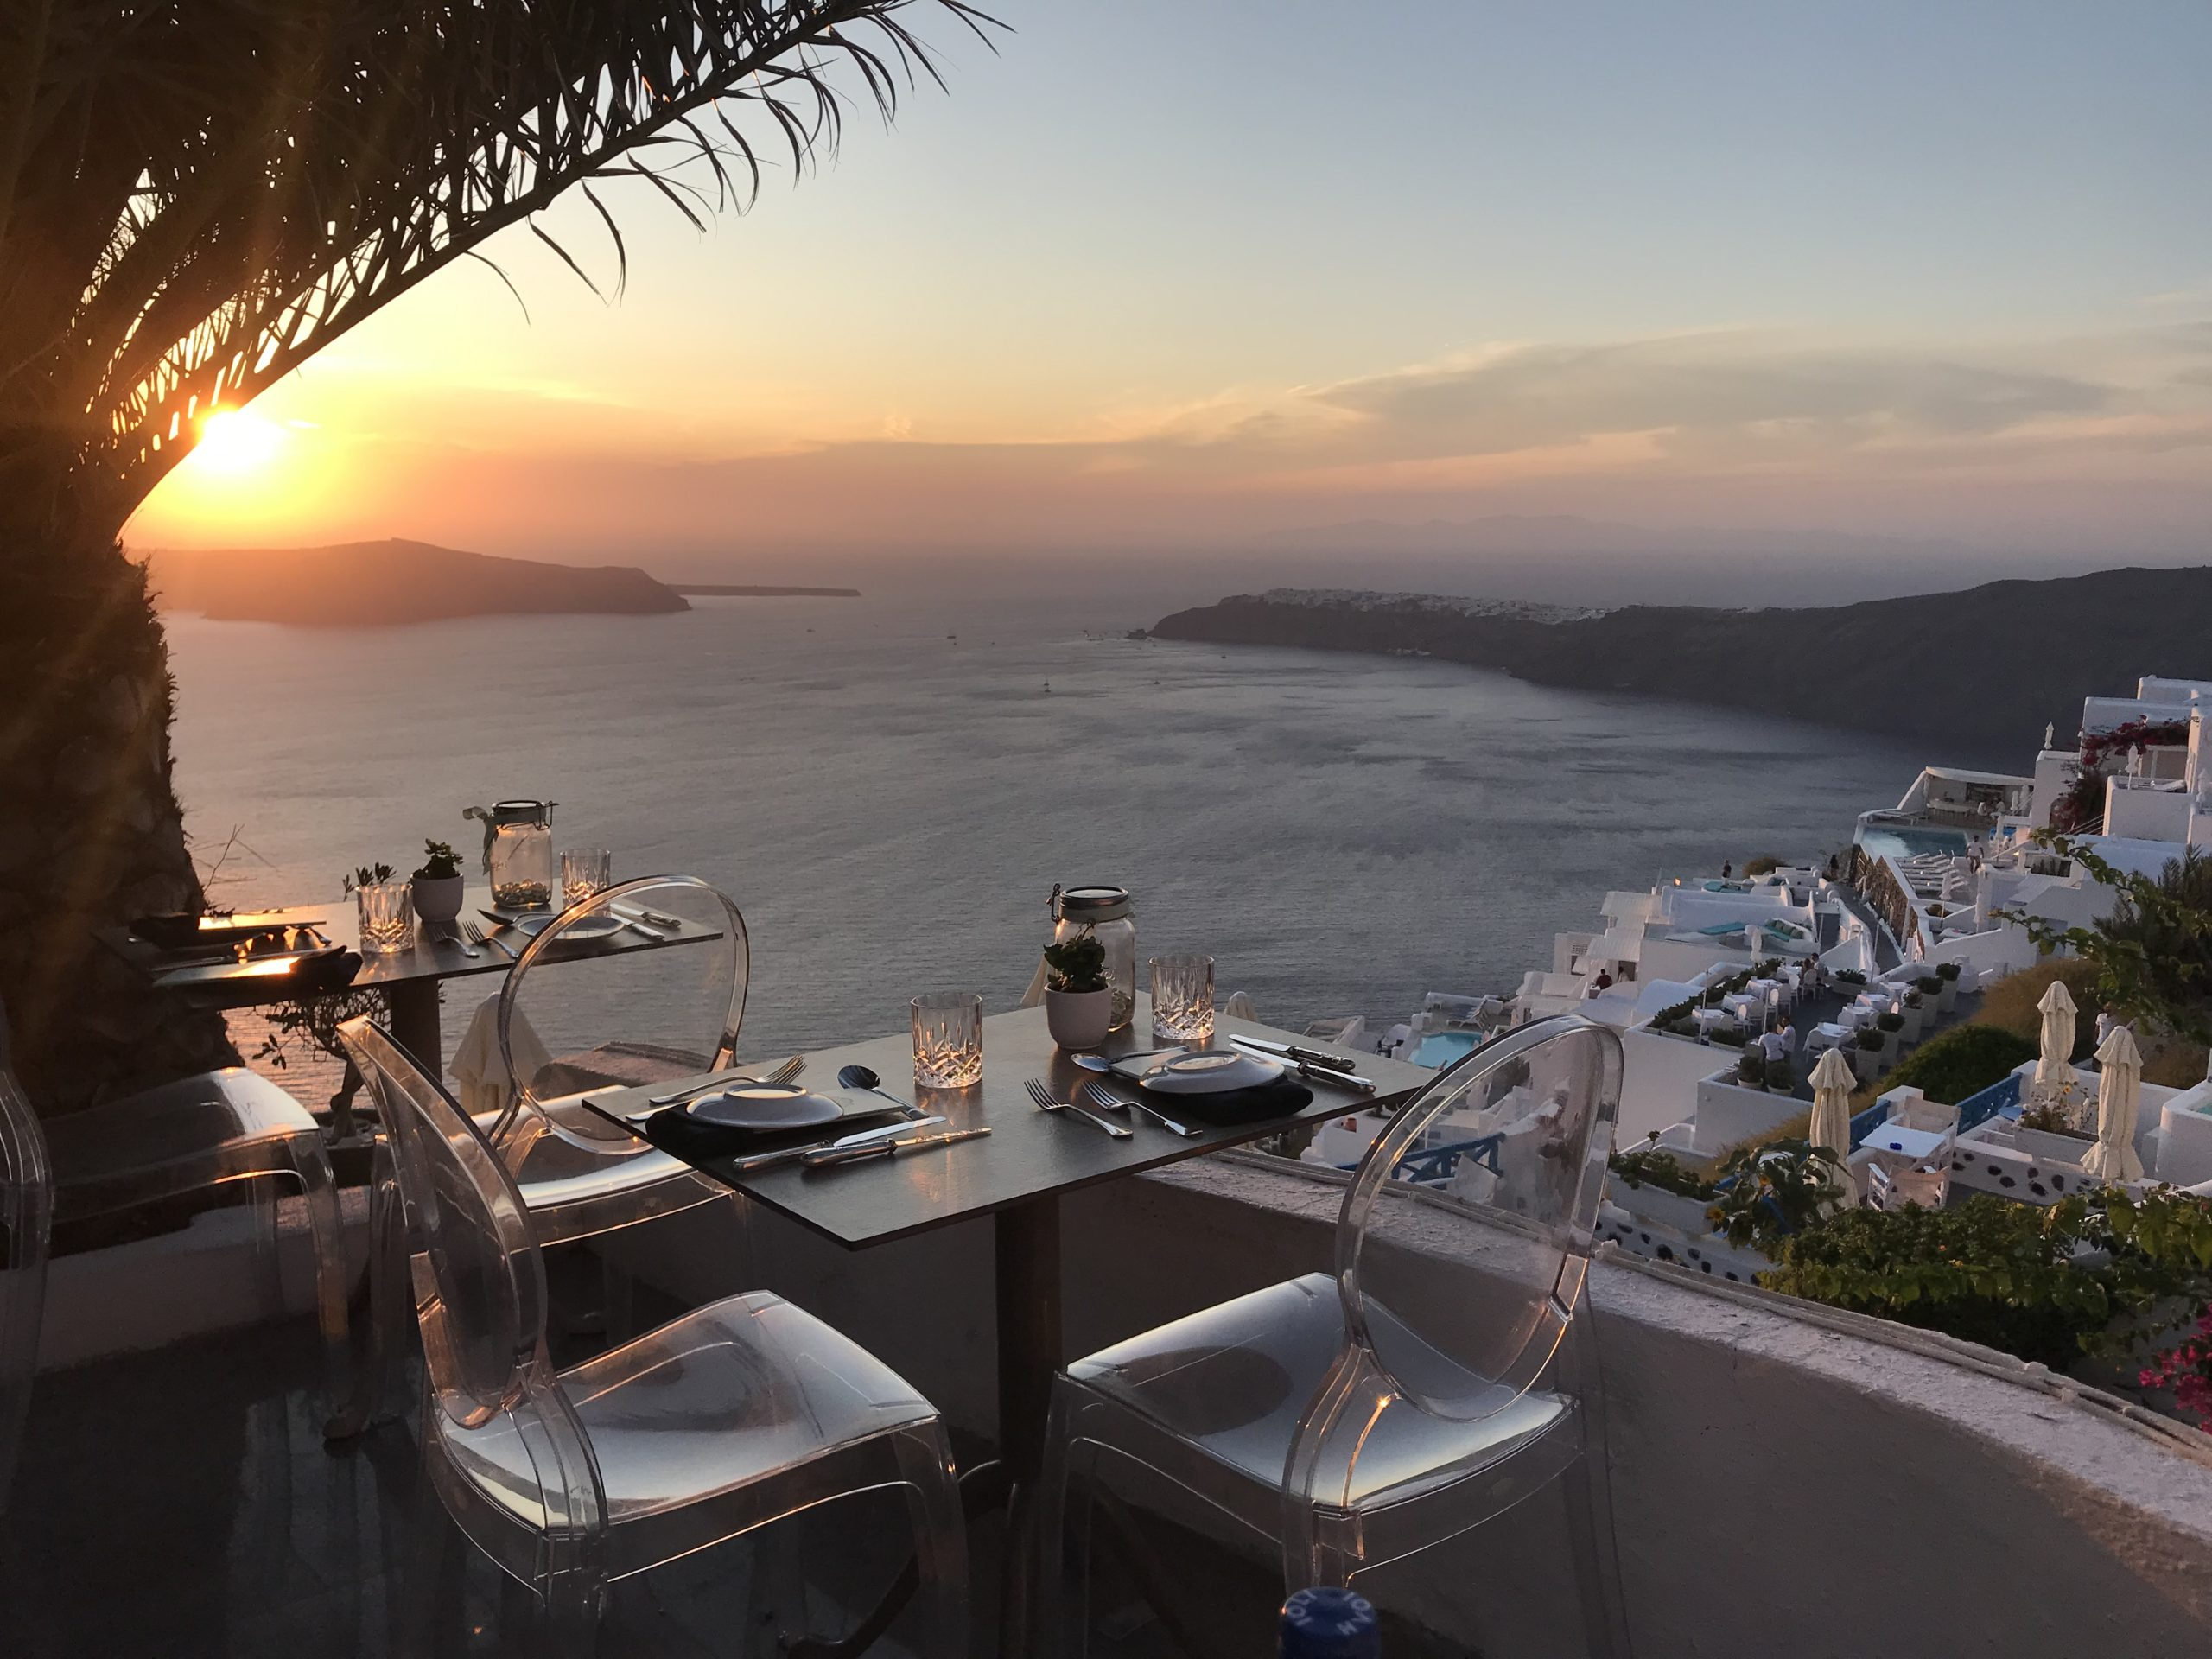 Sunset view of the Santorini caldera from a table set at Athenian House restaurant in Imerovigli